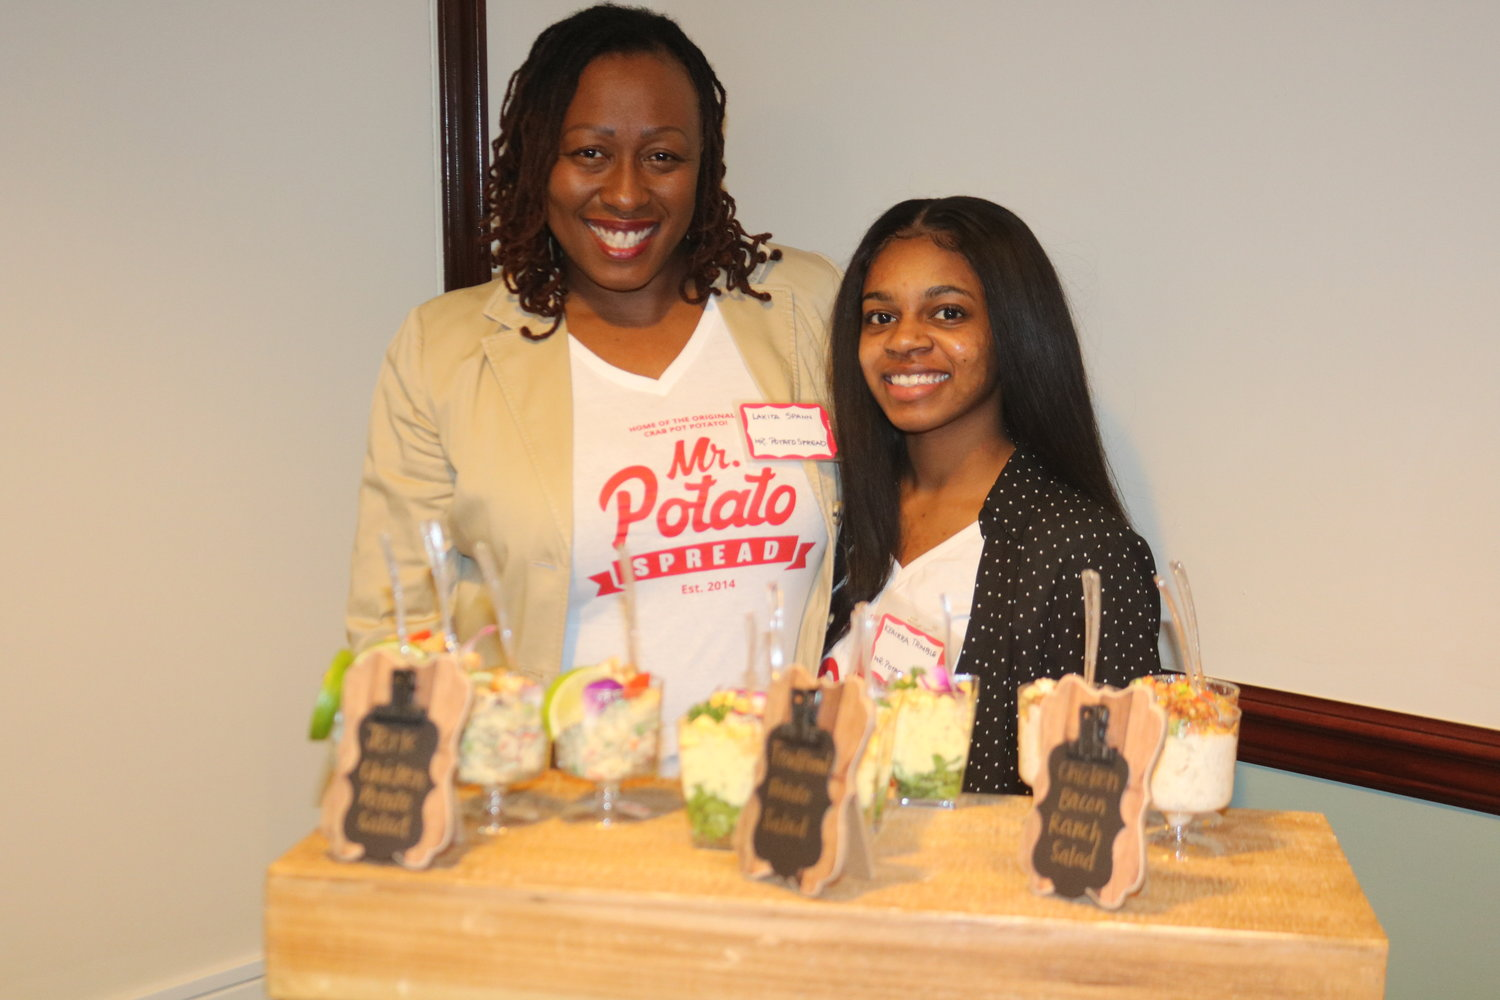 4.	Lakita Spann poses with coworker, Keairra Trimble, showing off the variety of potato creations of her business, Mr. Potato Spread.